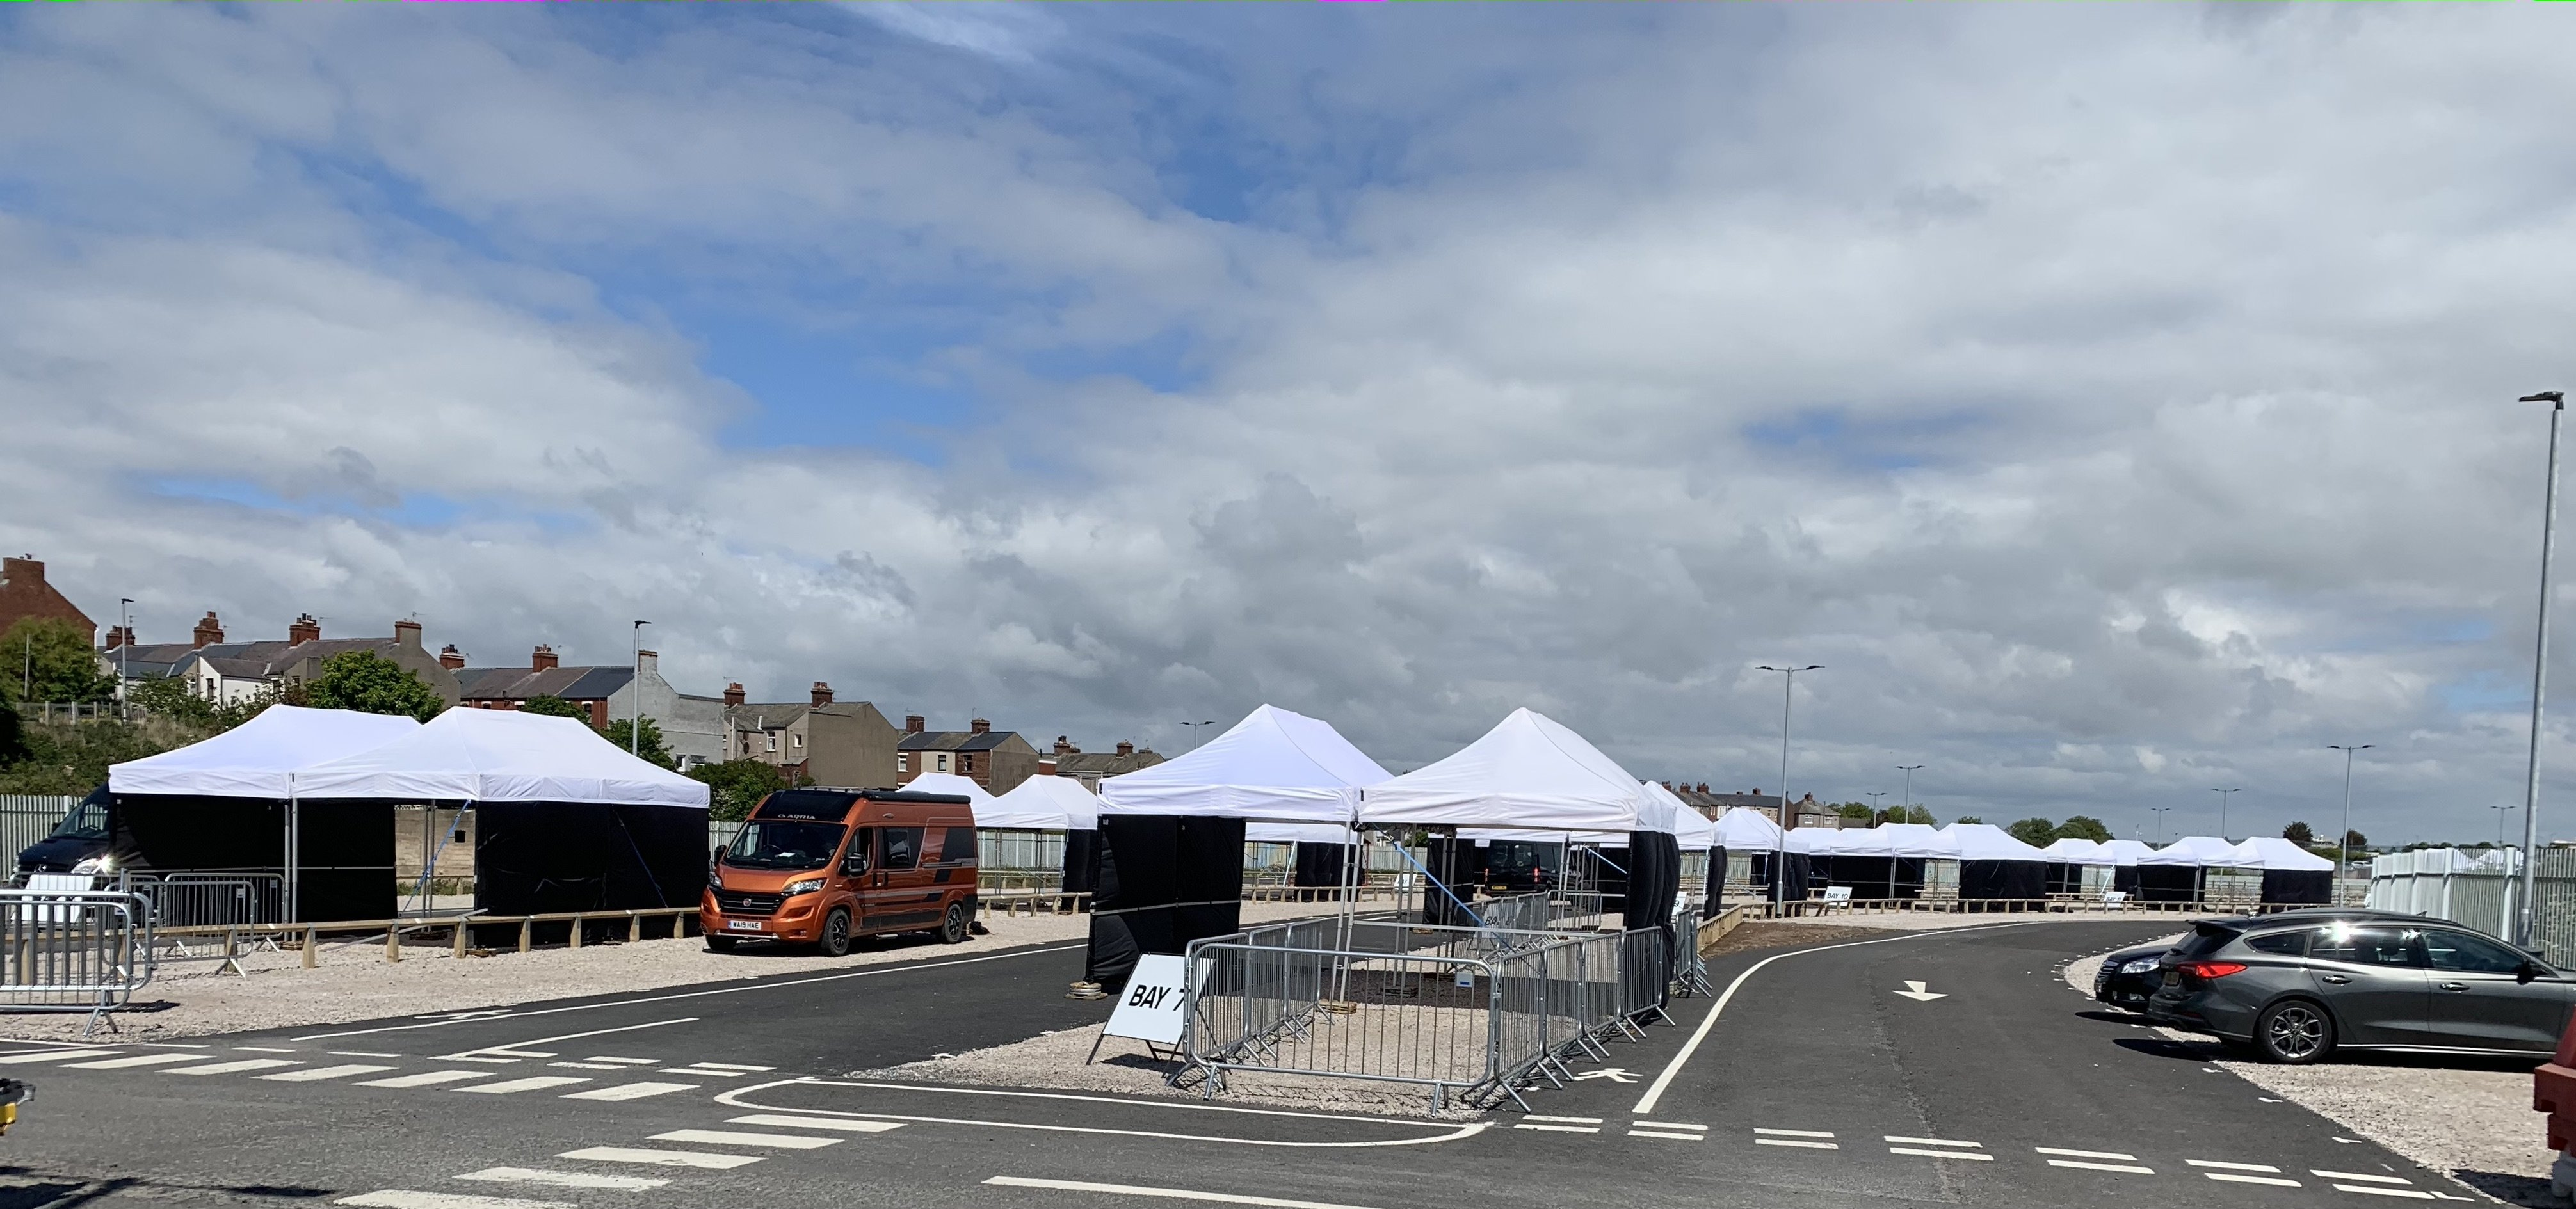 Pop Up Marquees or Gazebos for Covid-19 Drive Testing